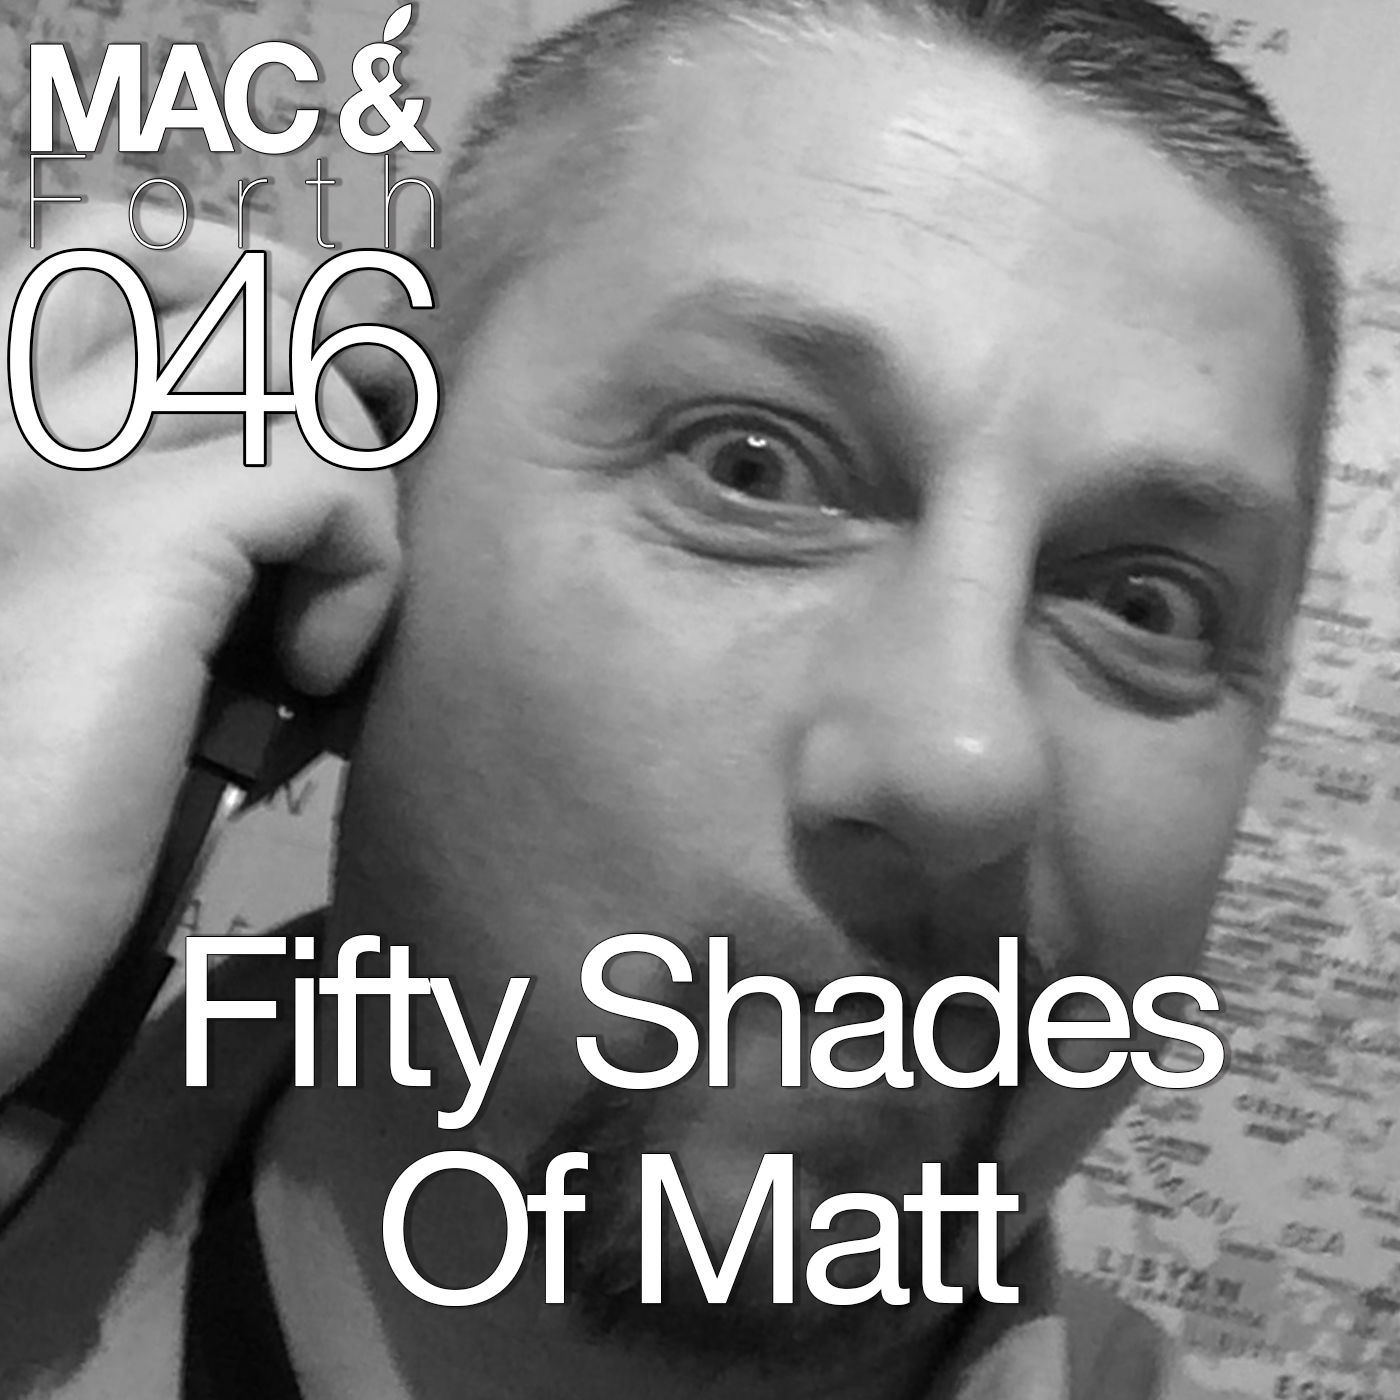 The Mac & Forth Show 046 - Fifty Shades Of Matt